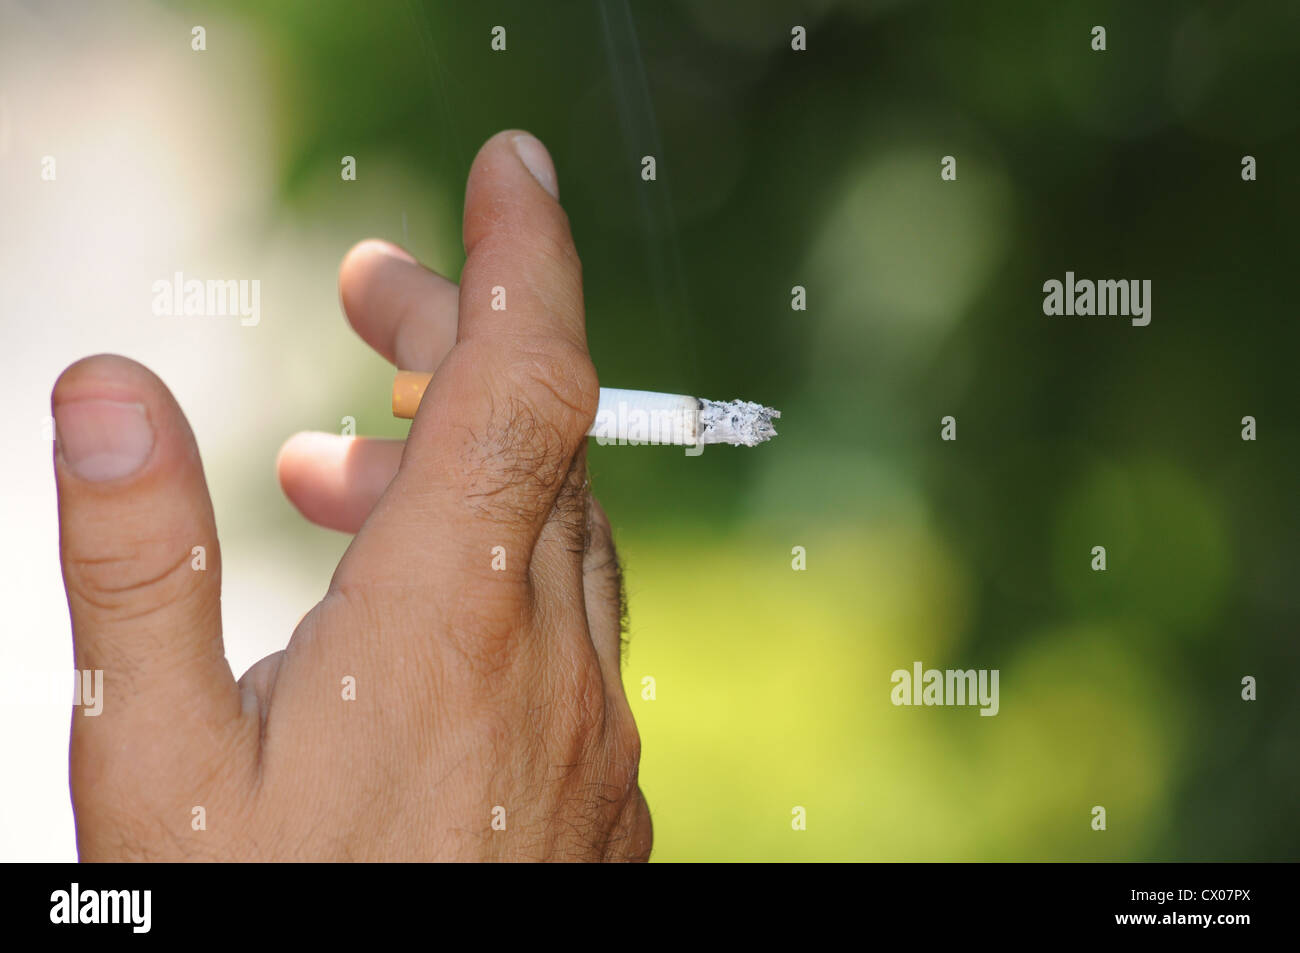 Cigar in the hand of a smoker. - Stock Image